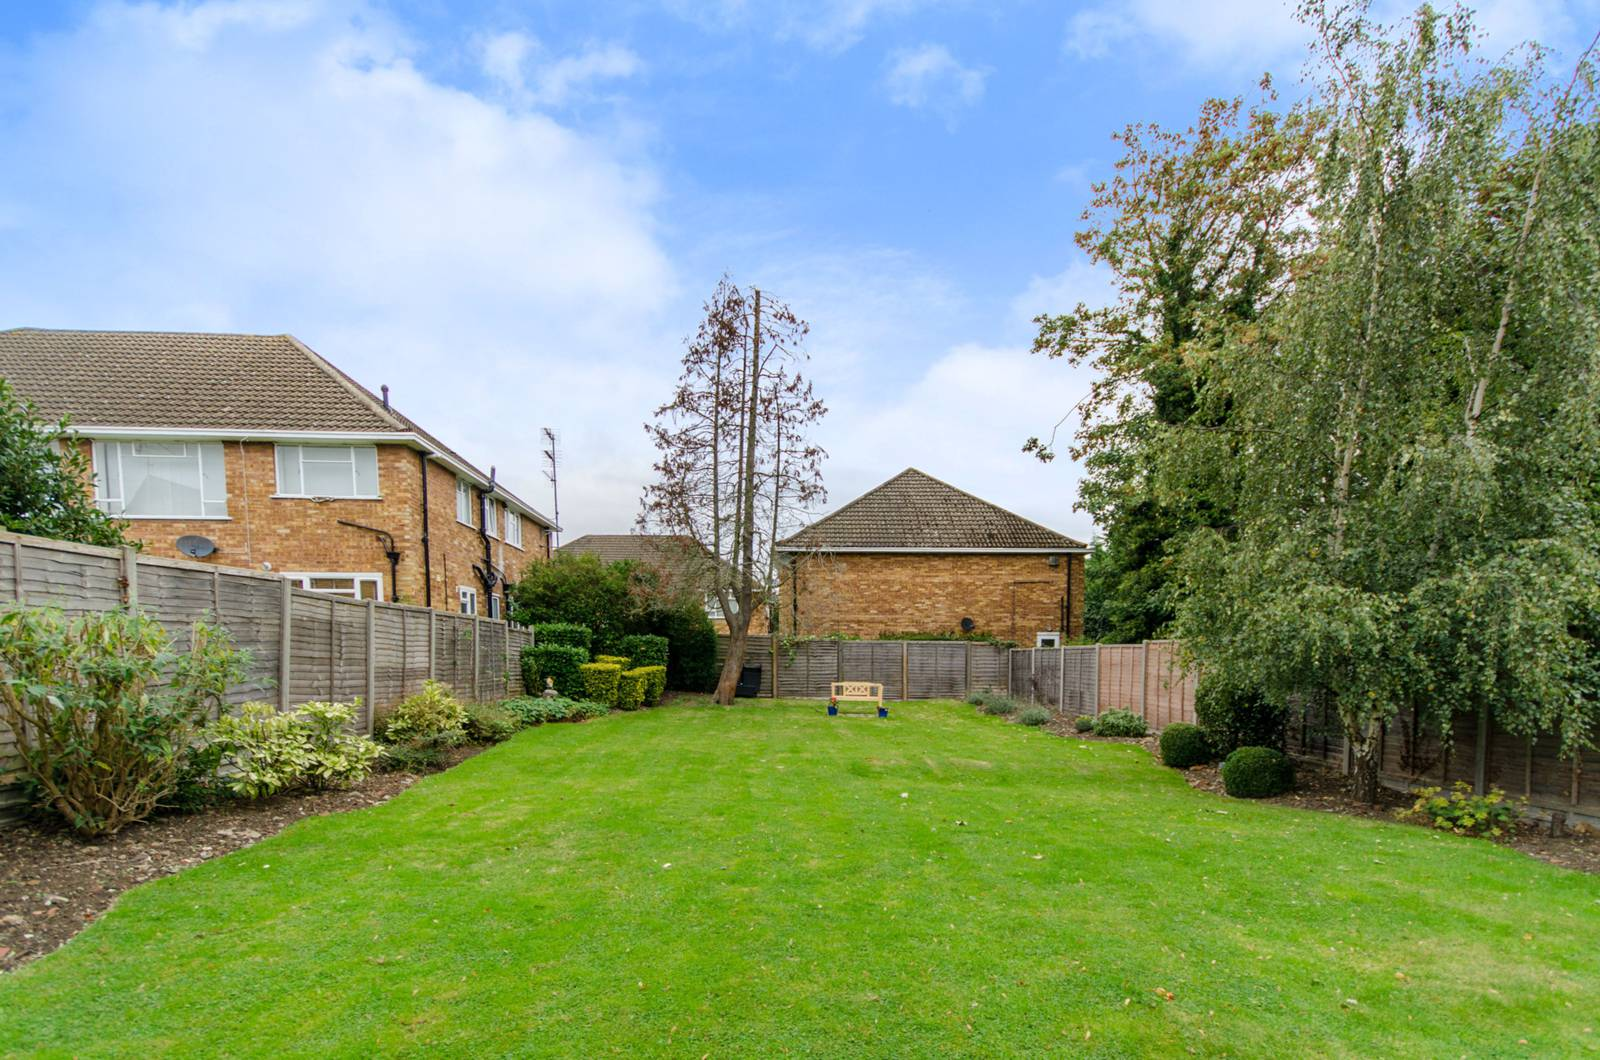 1 bedroom flat for sale in torrington park north finchley